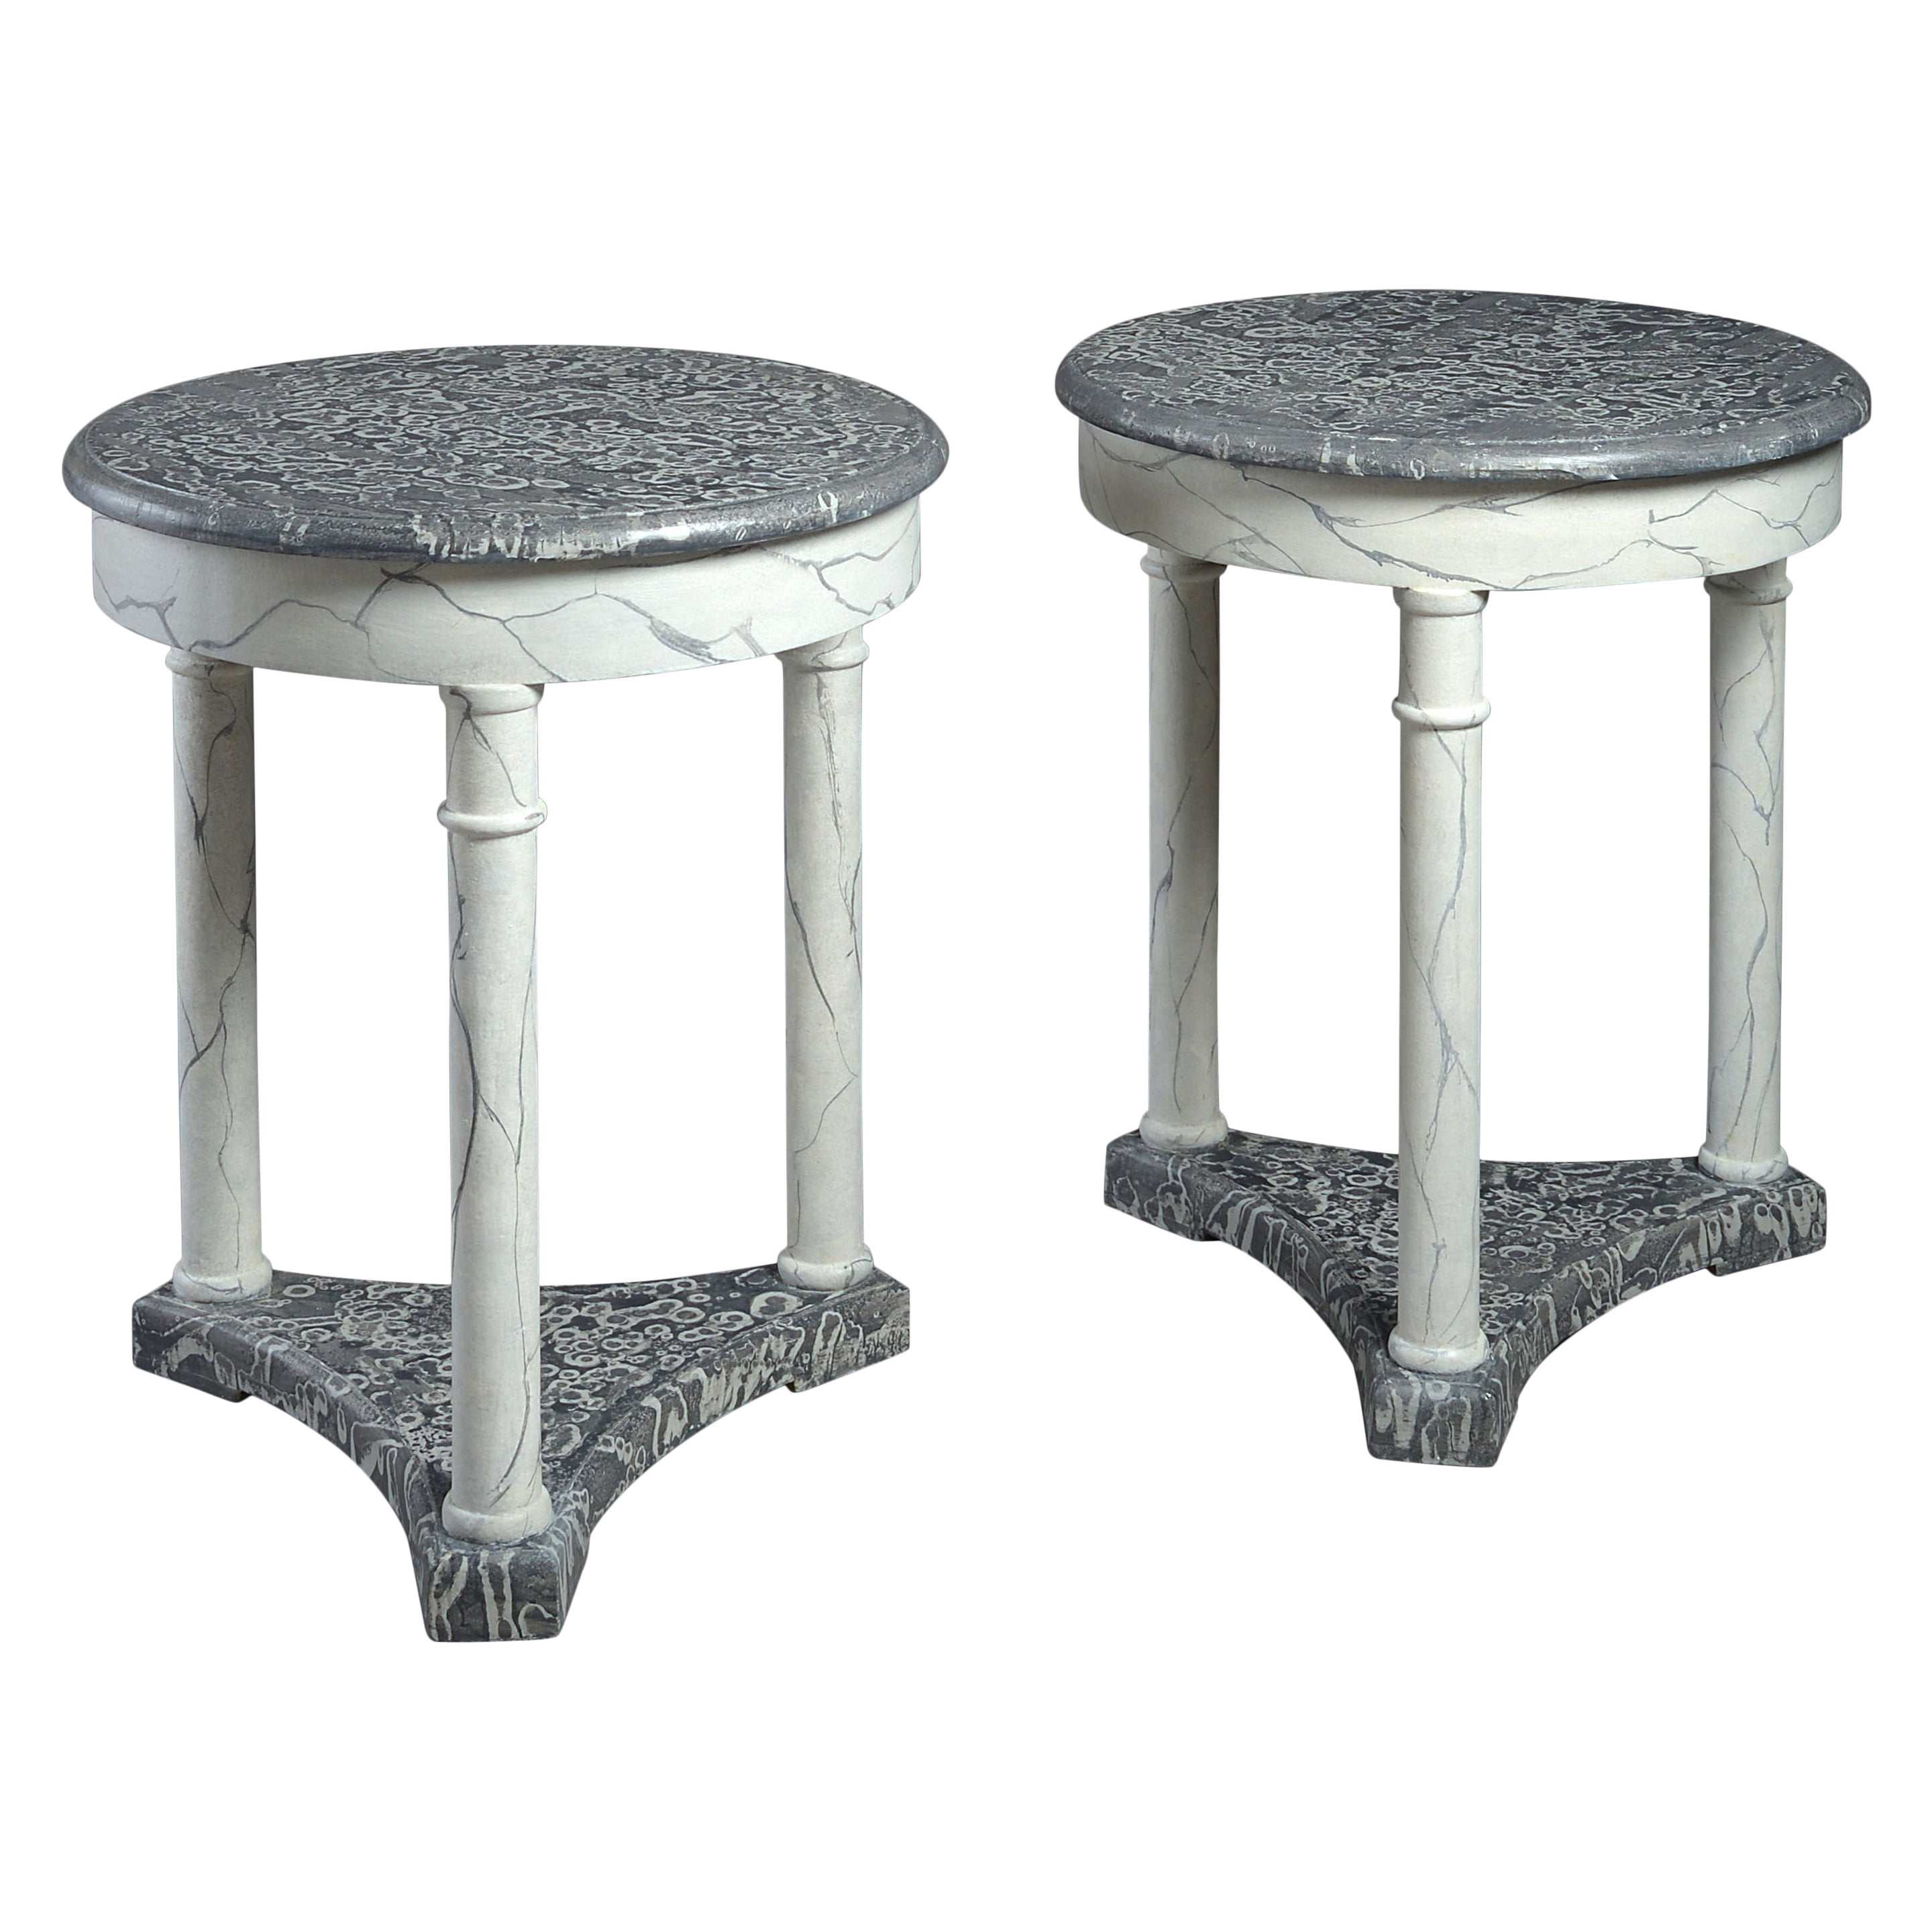 Pair of Faux Marble Circular End Tables